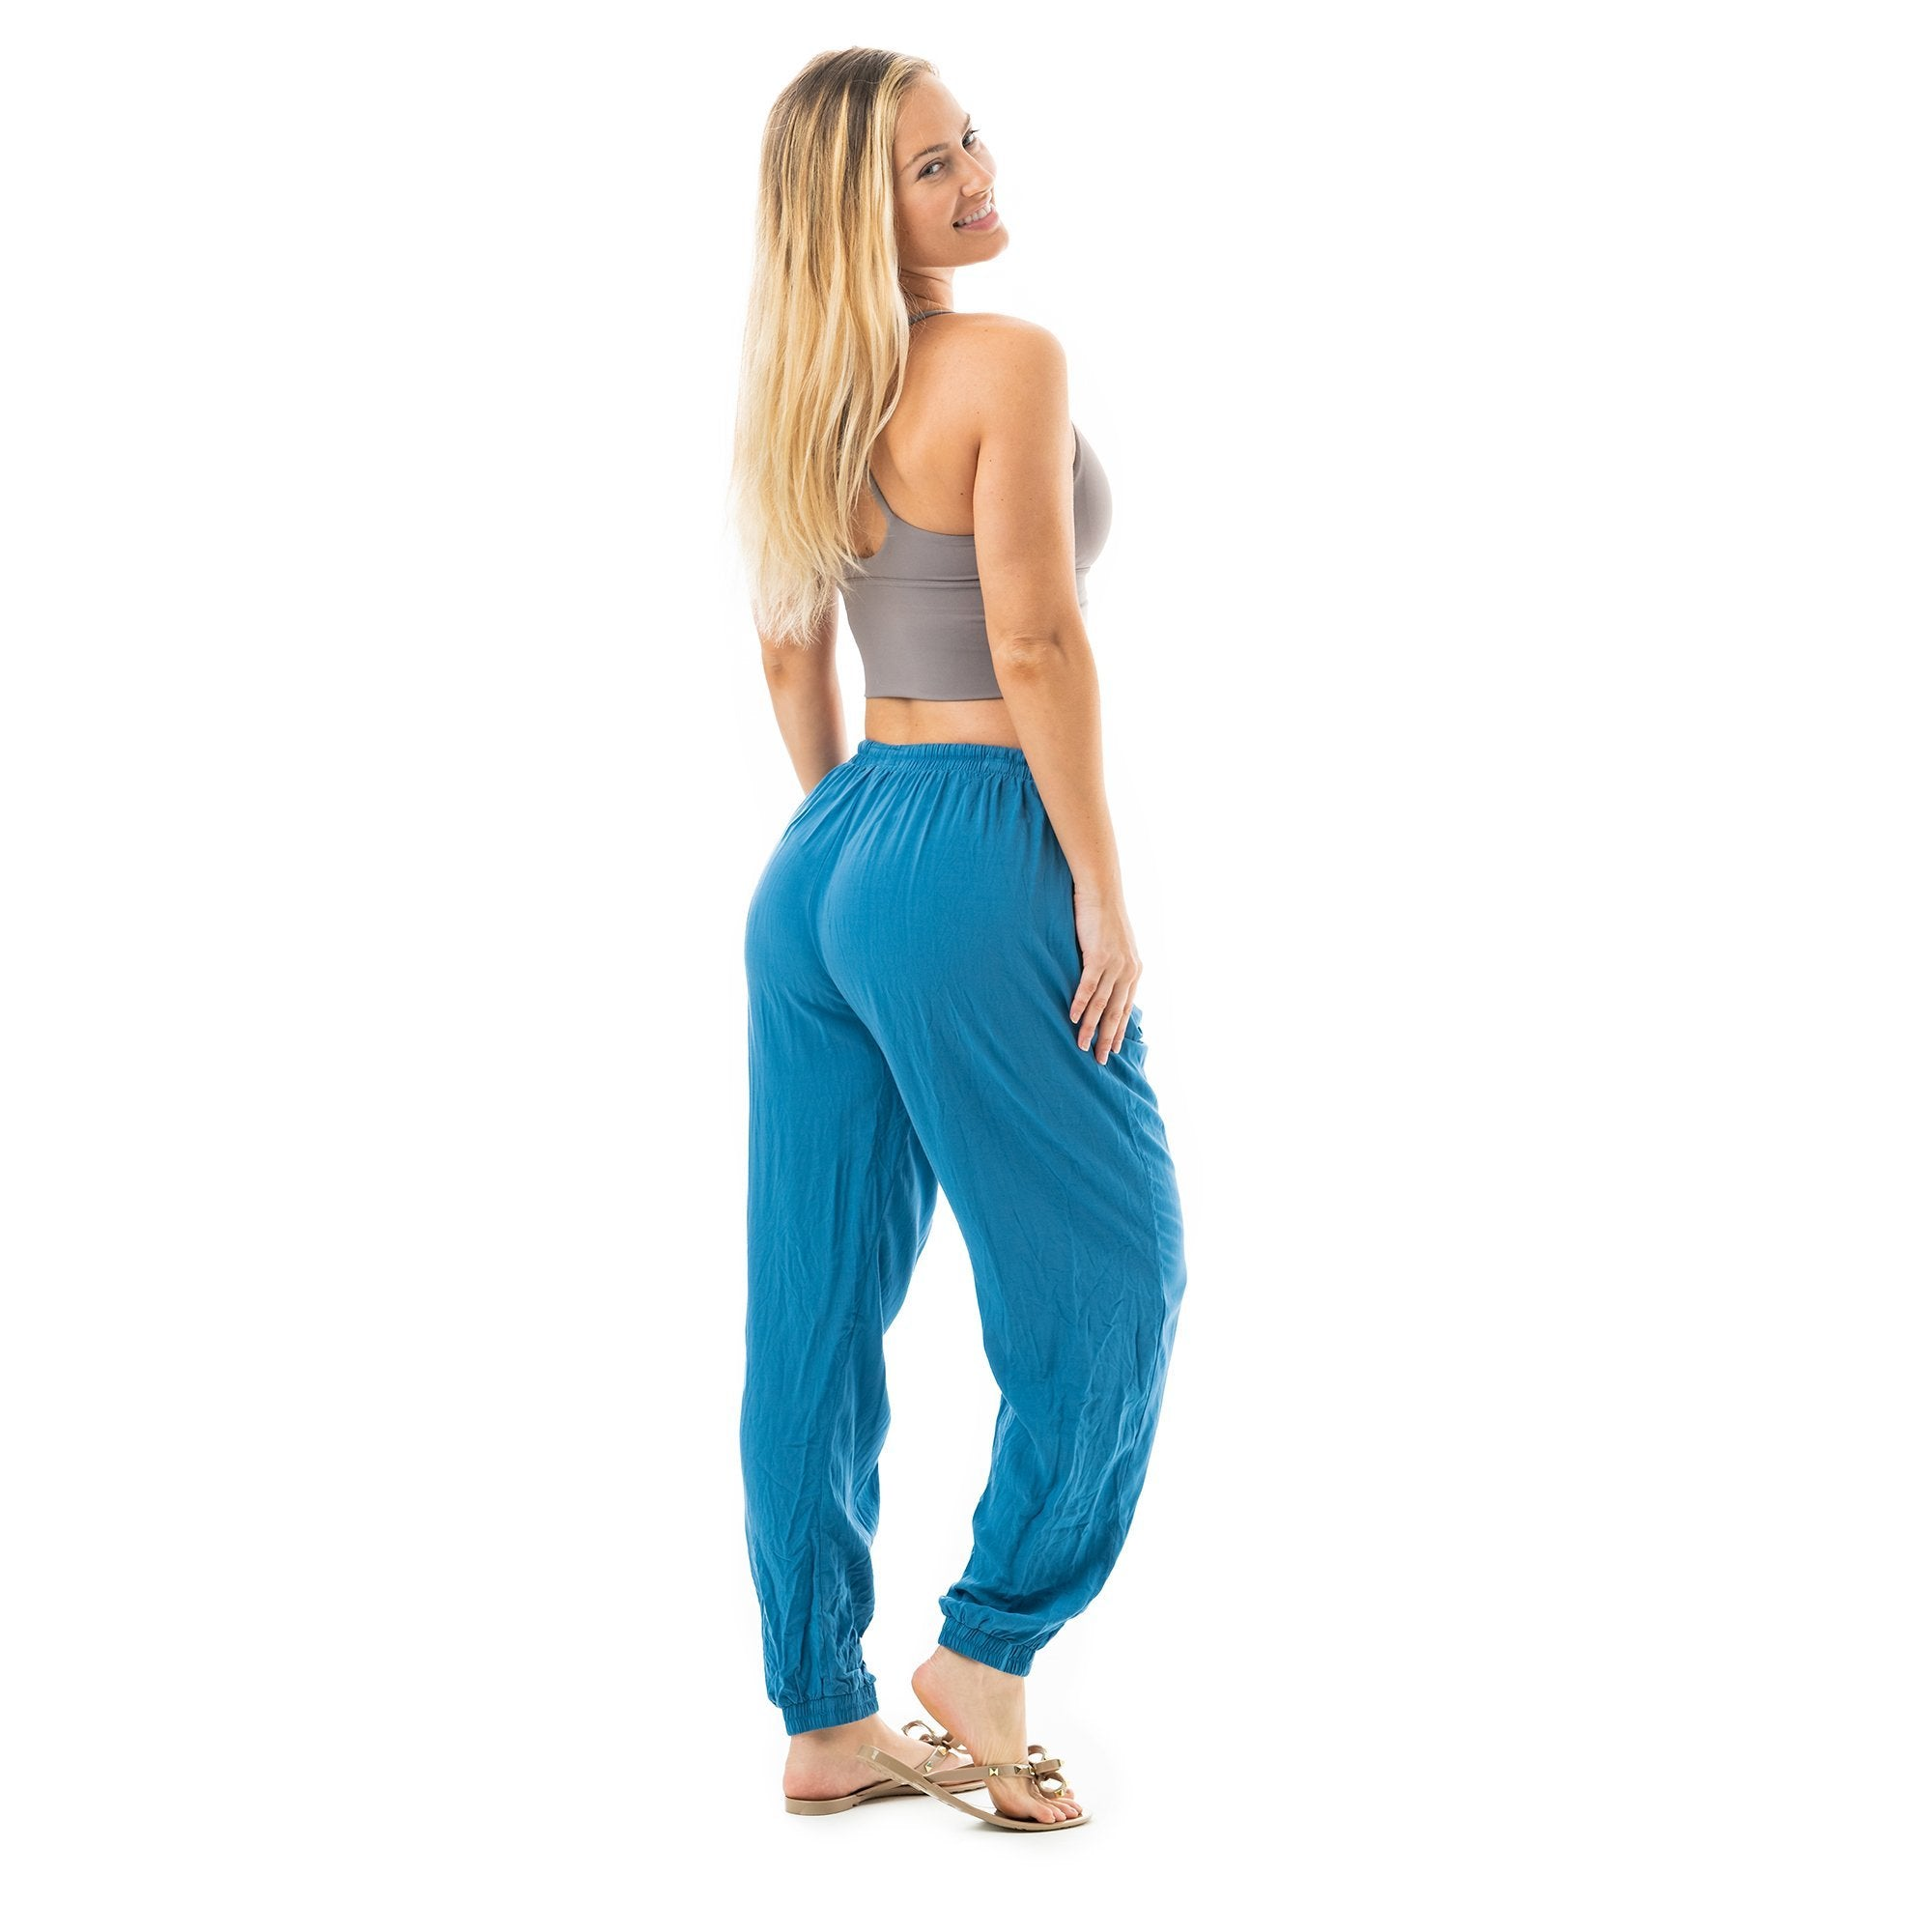 Miami Harem Pants By Buddha Pants® - Buddha Pants®